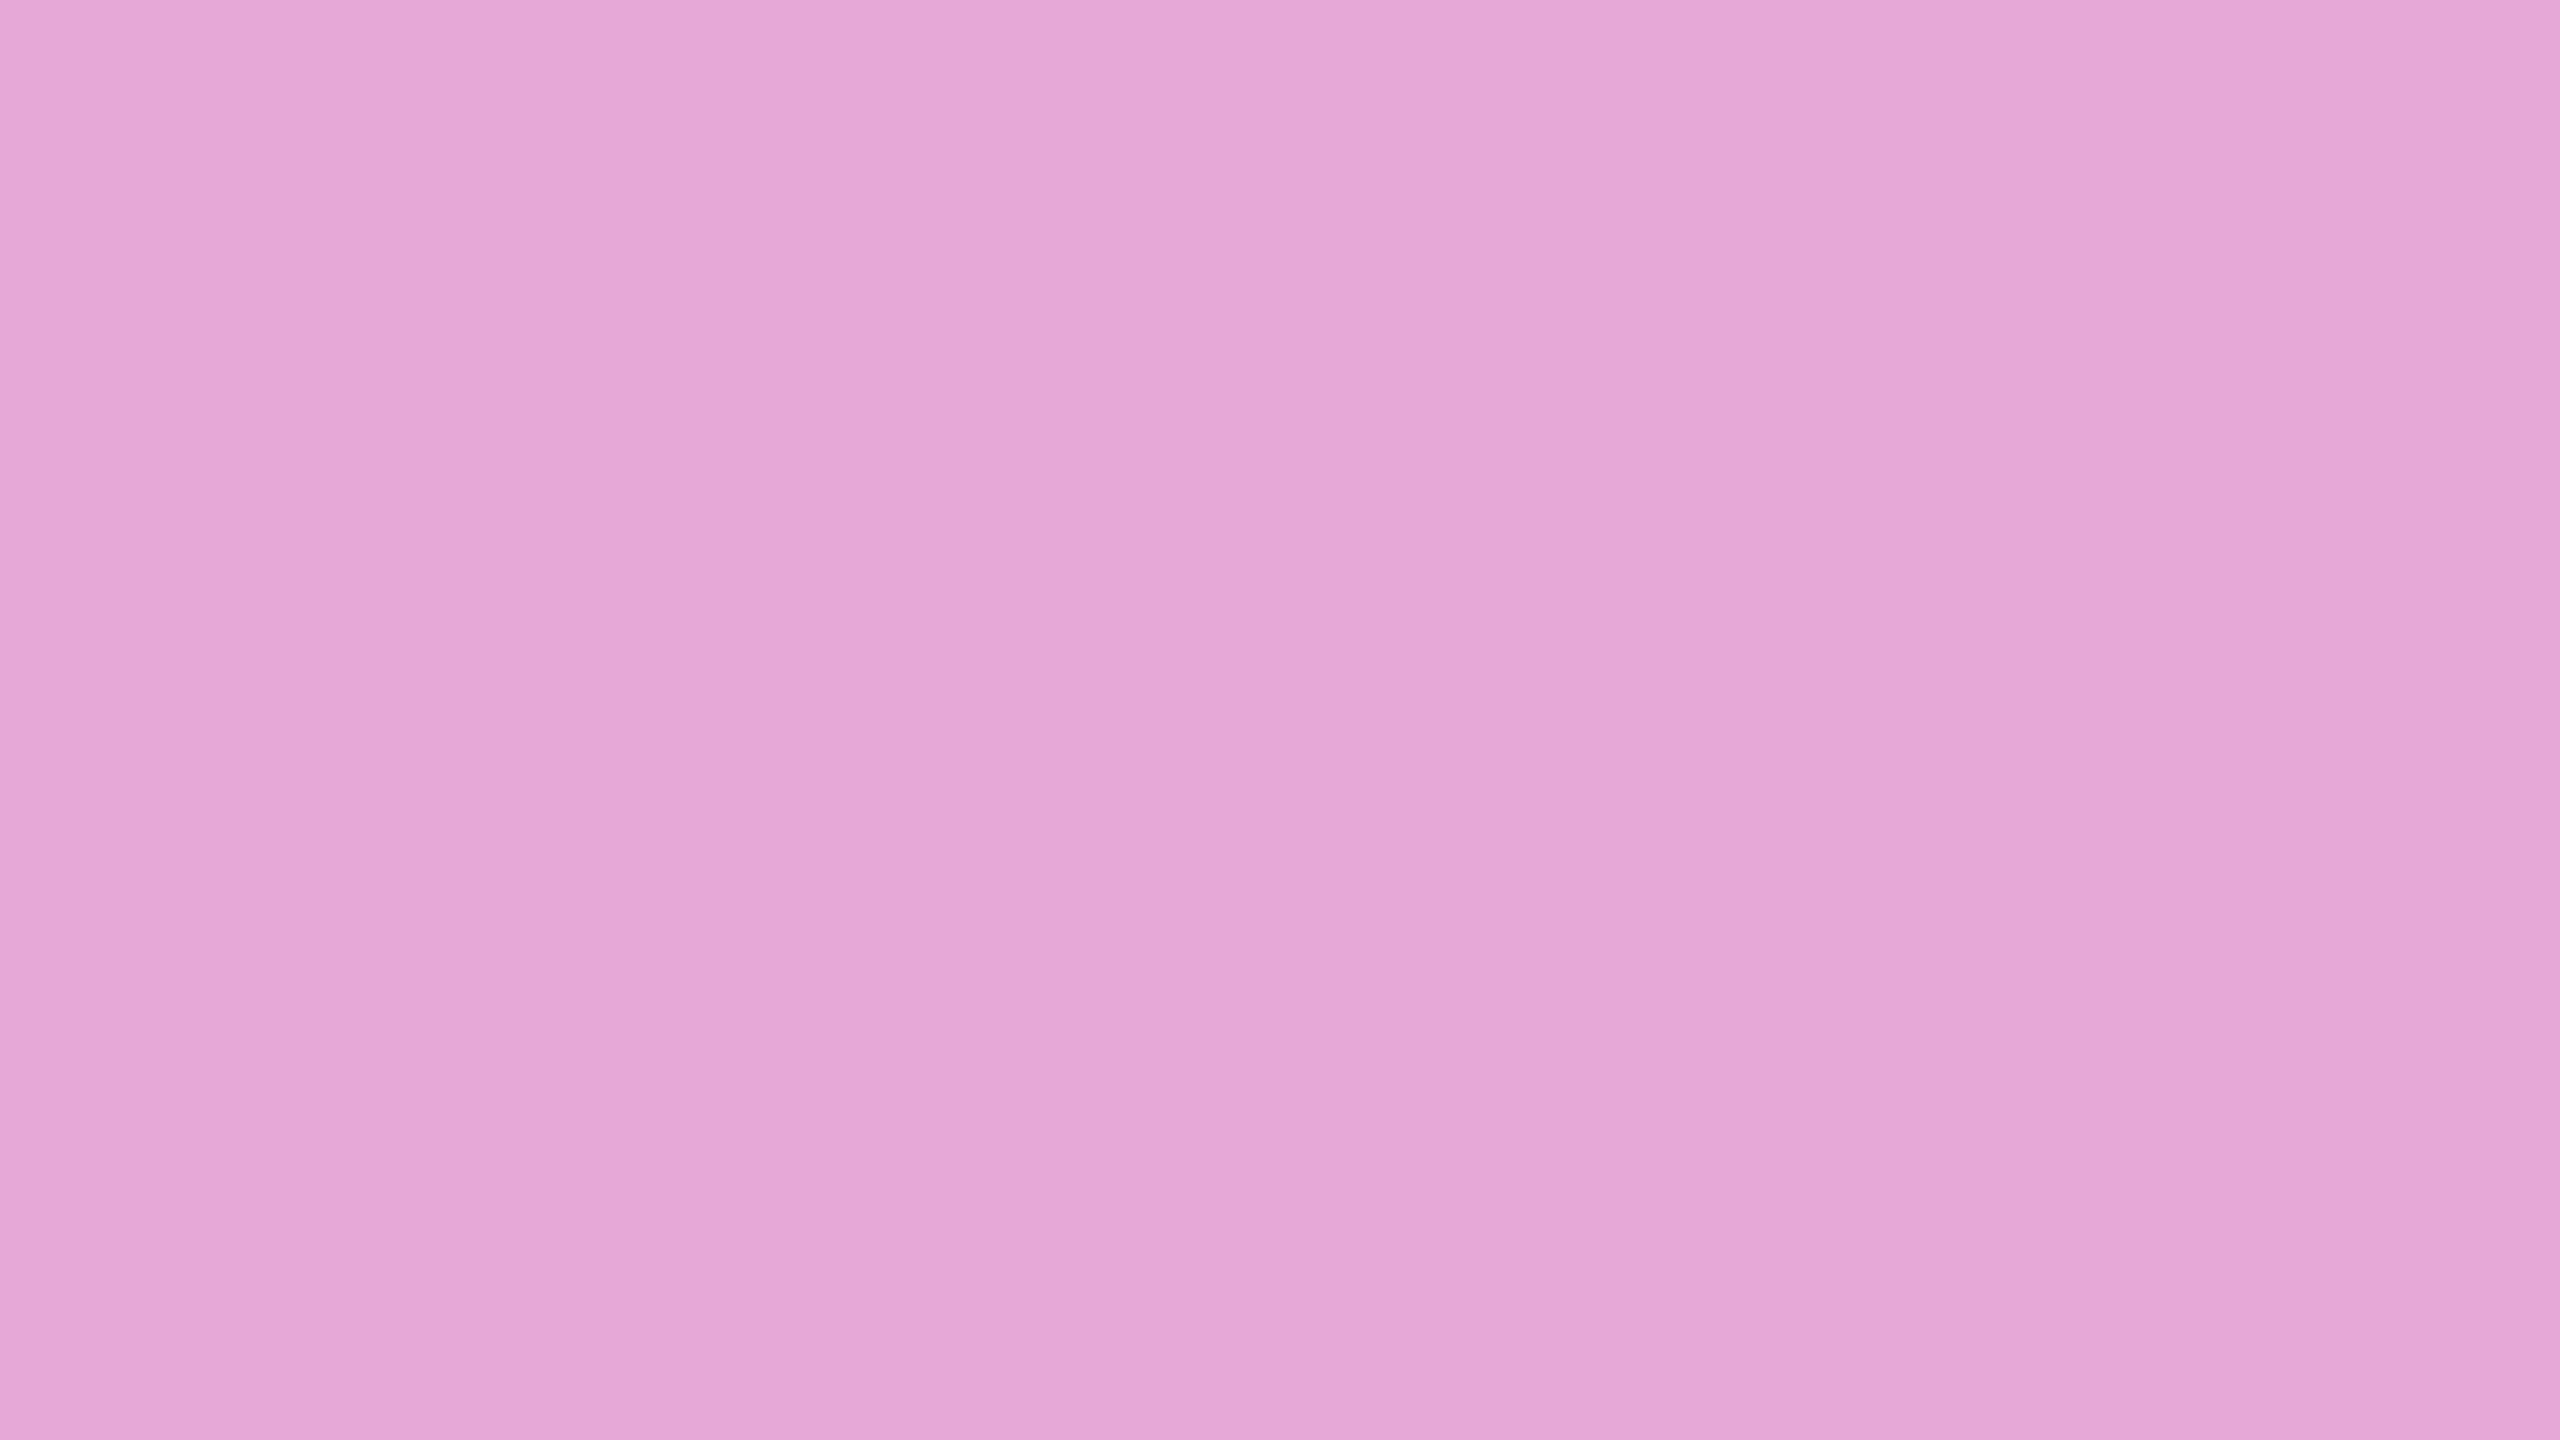 2560x1440 Light Orchid Solid Color Background